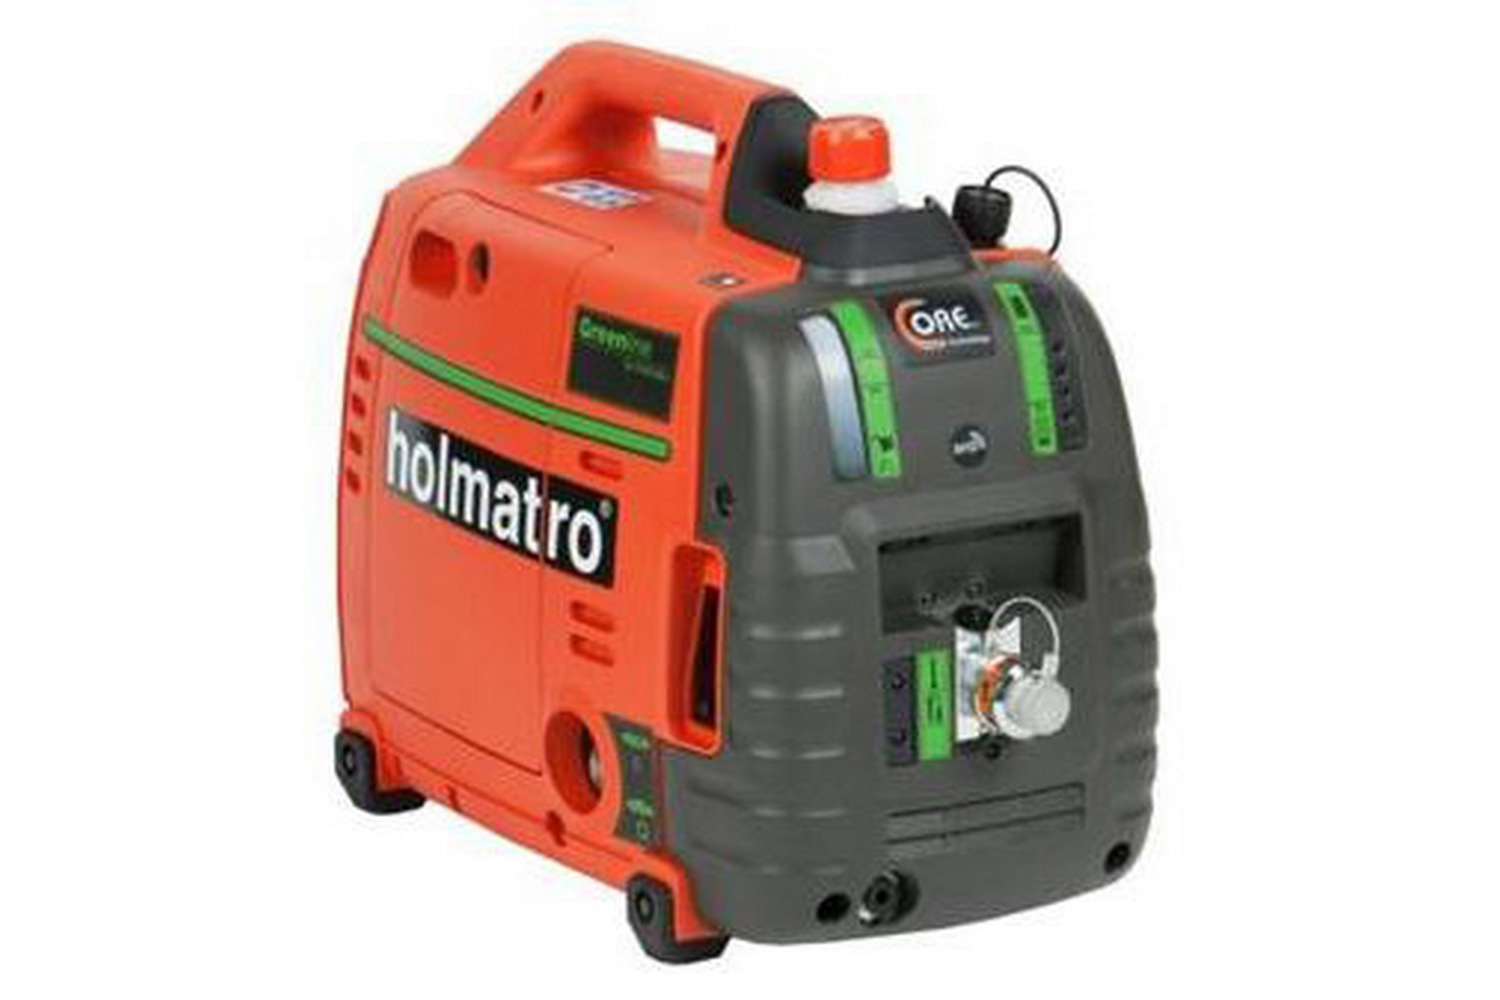 HOLMATRO SPU 16 BATTERY POWERED RESCUE PUMP